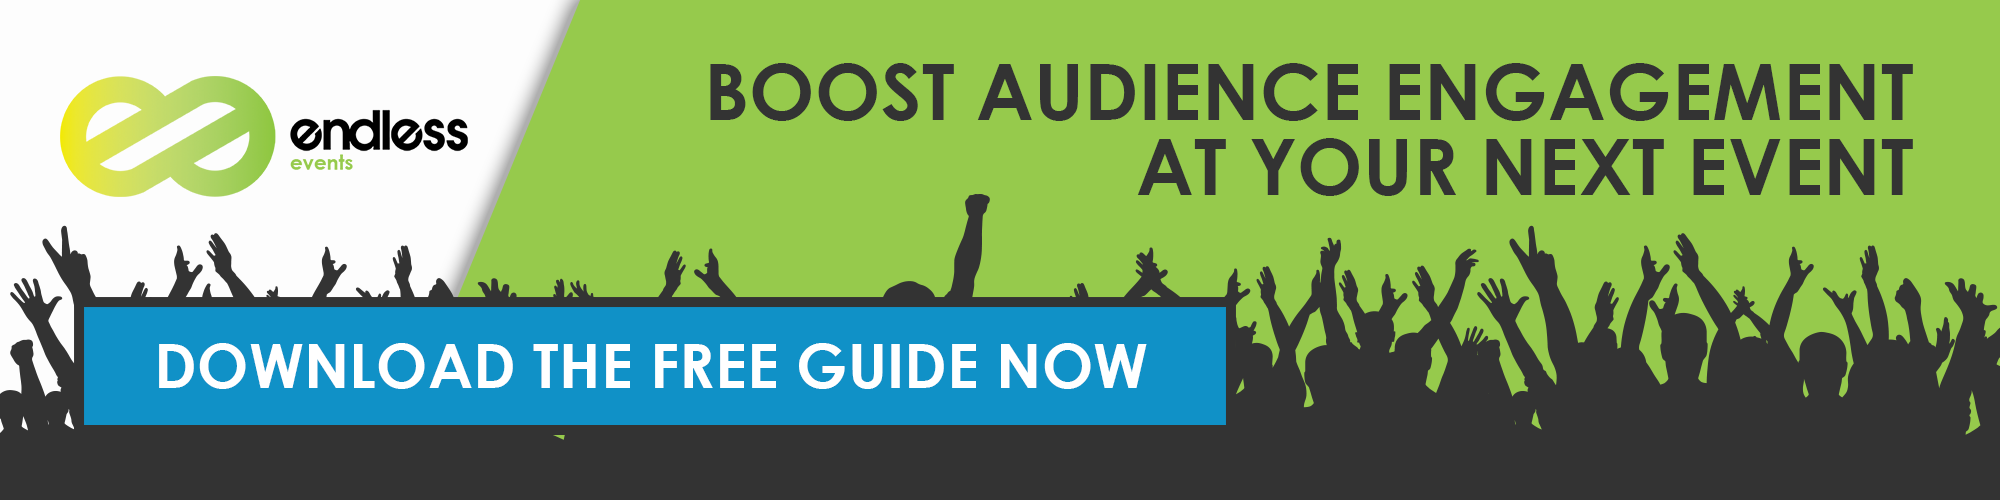 Audience Engagement Guide